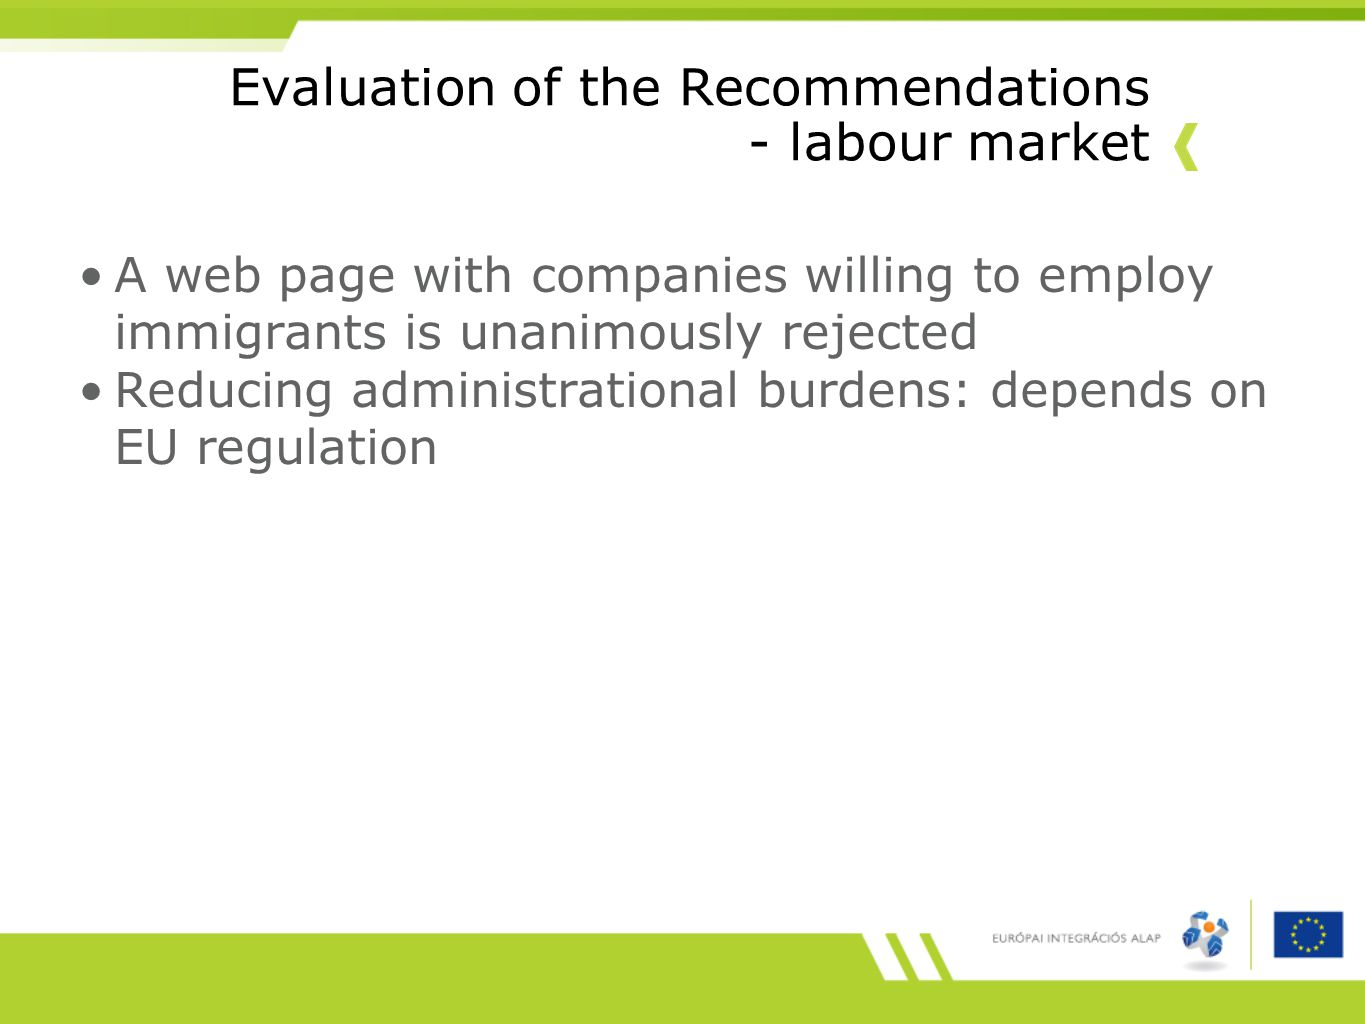 Evaluation of the Recommendations - labour market A web page with companies willing to employ immigrants is unanimously rejected Reducing administrational burdens: depends on EU regulation